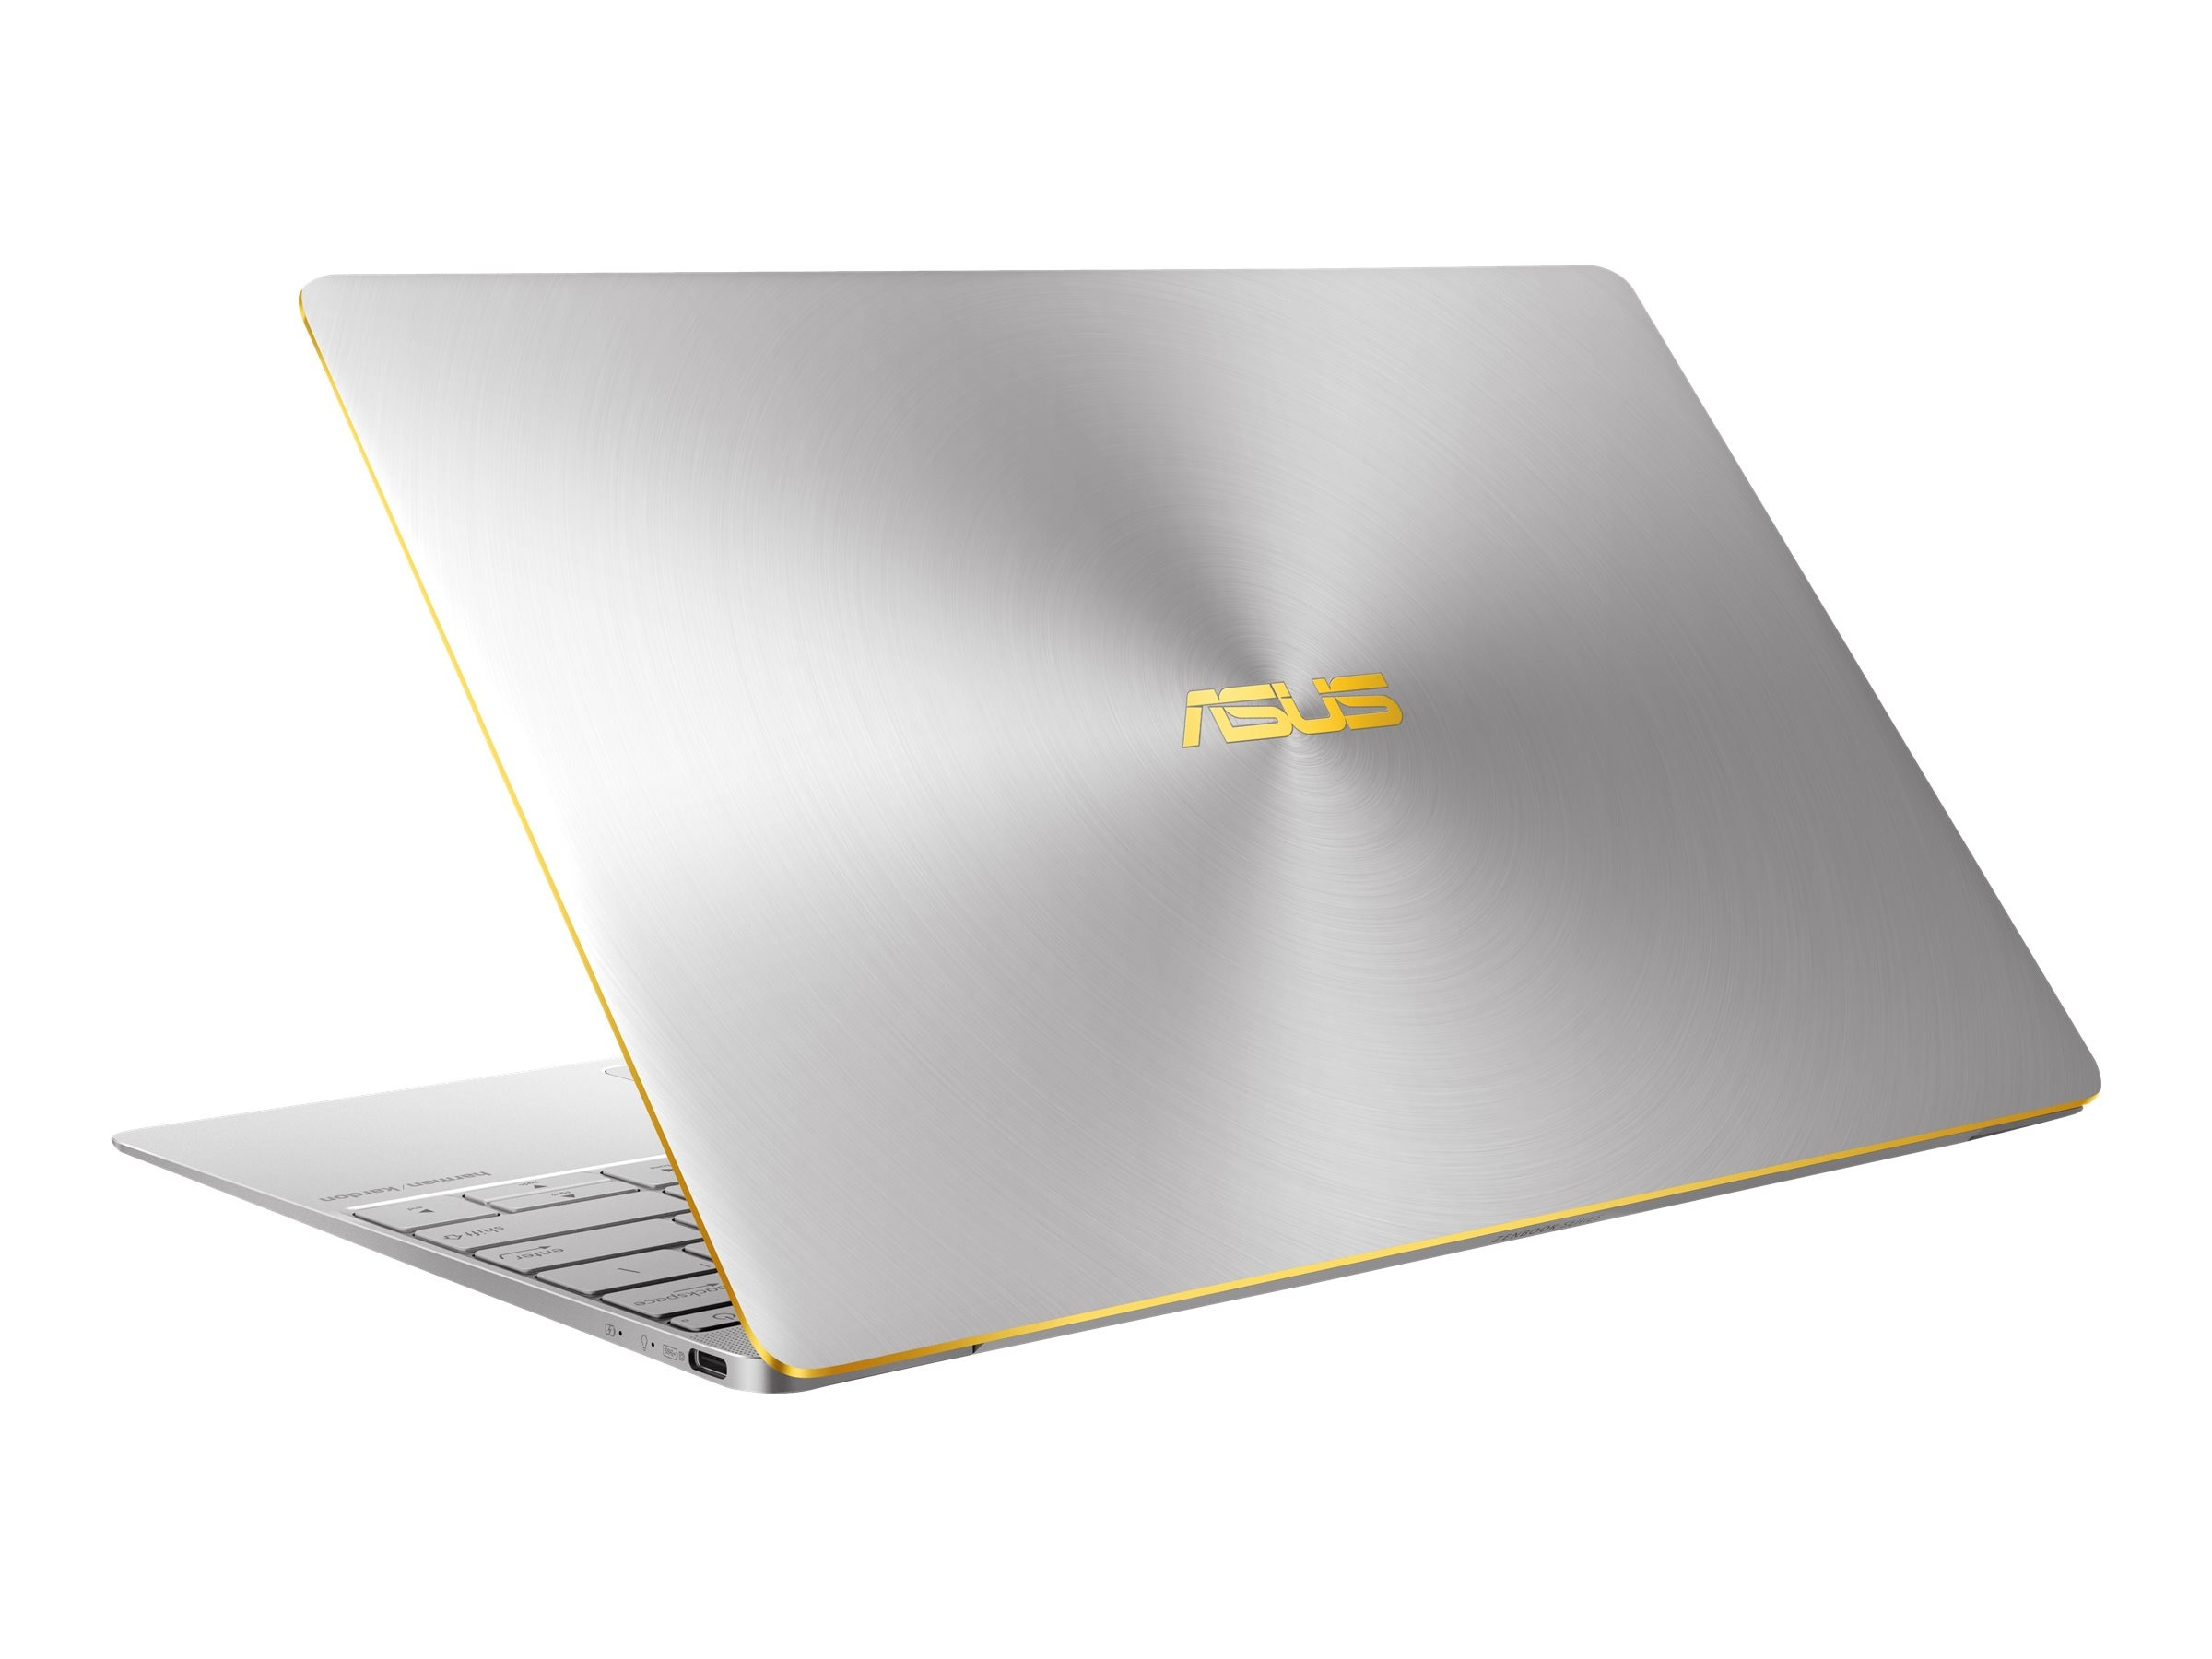 Asus UX390UA-DH51-GR Notebook PC